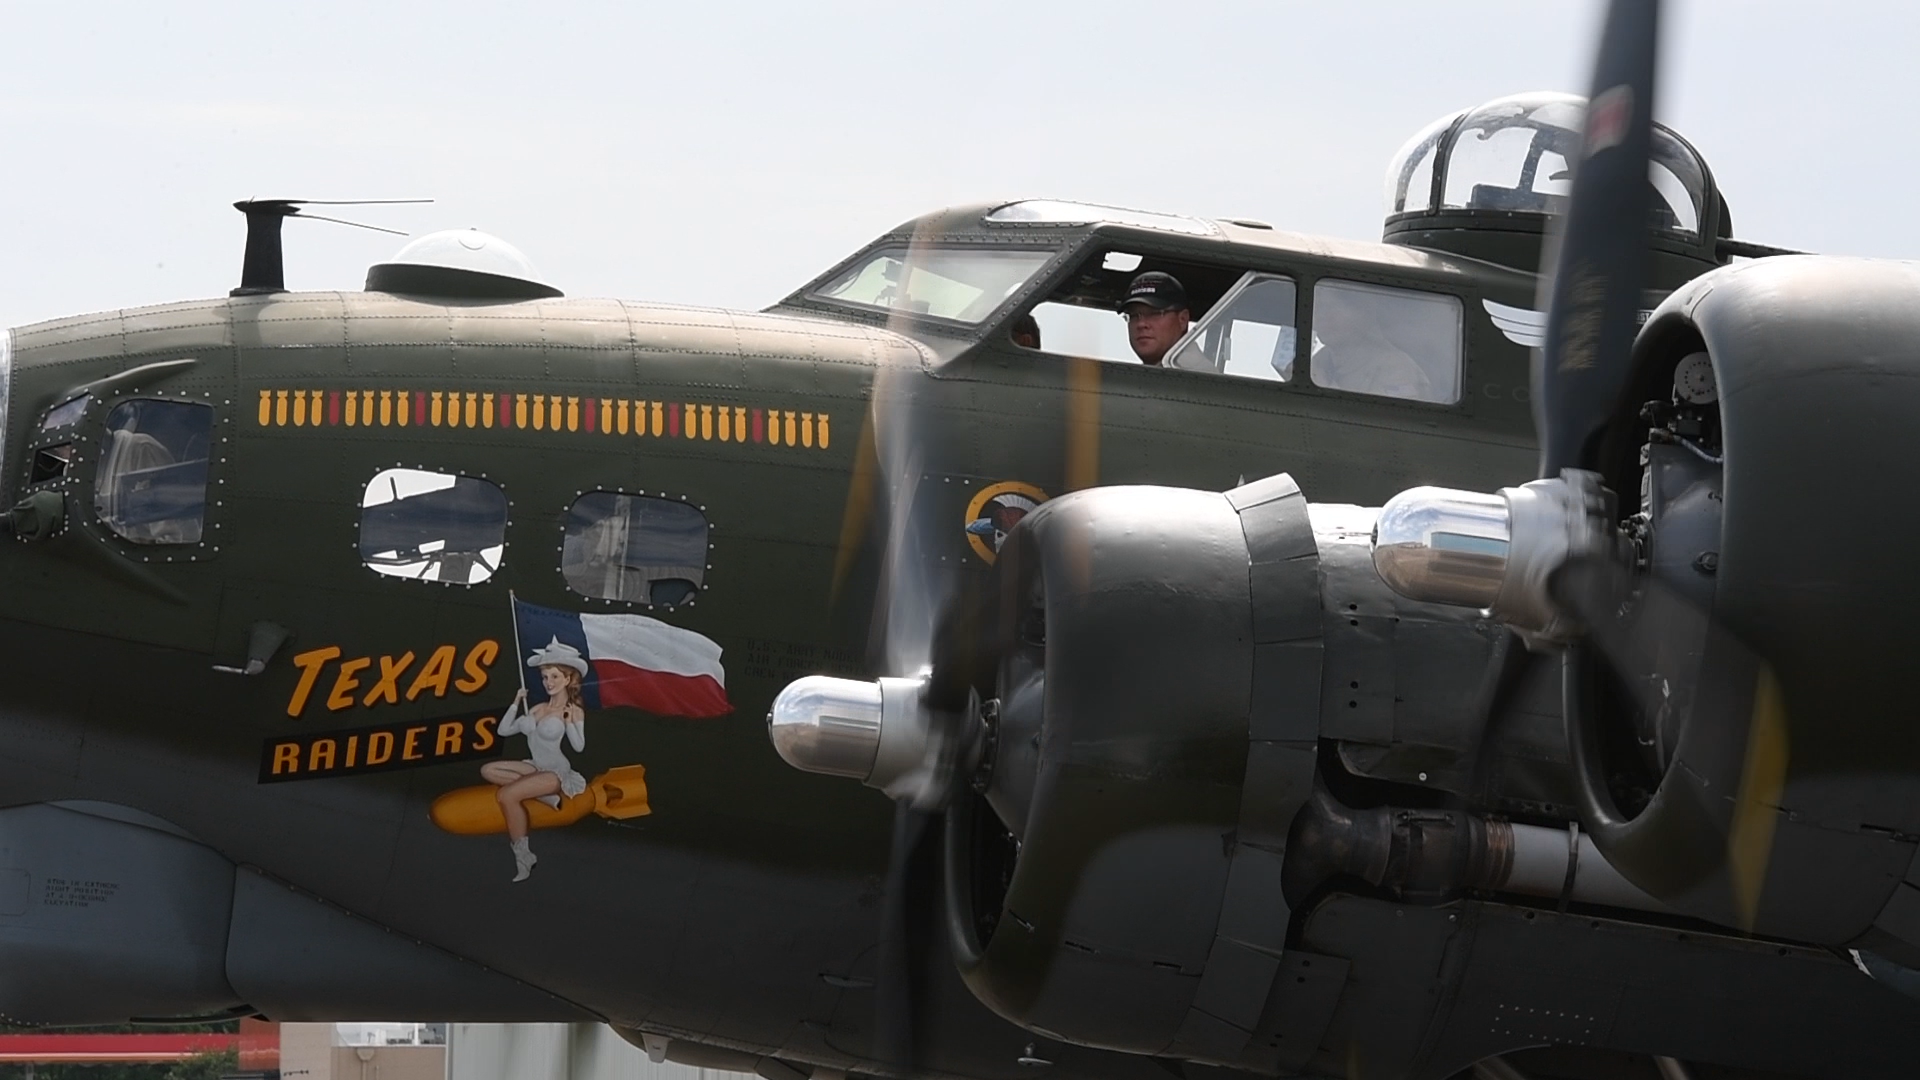 Experience the B-17 in 60 Seconds